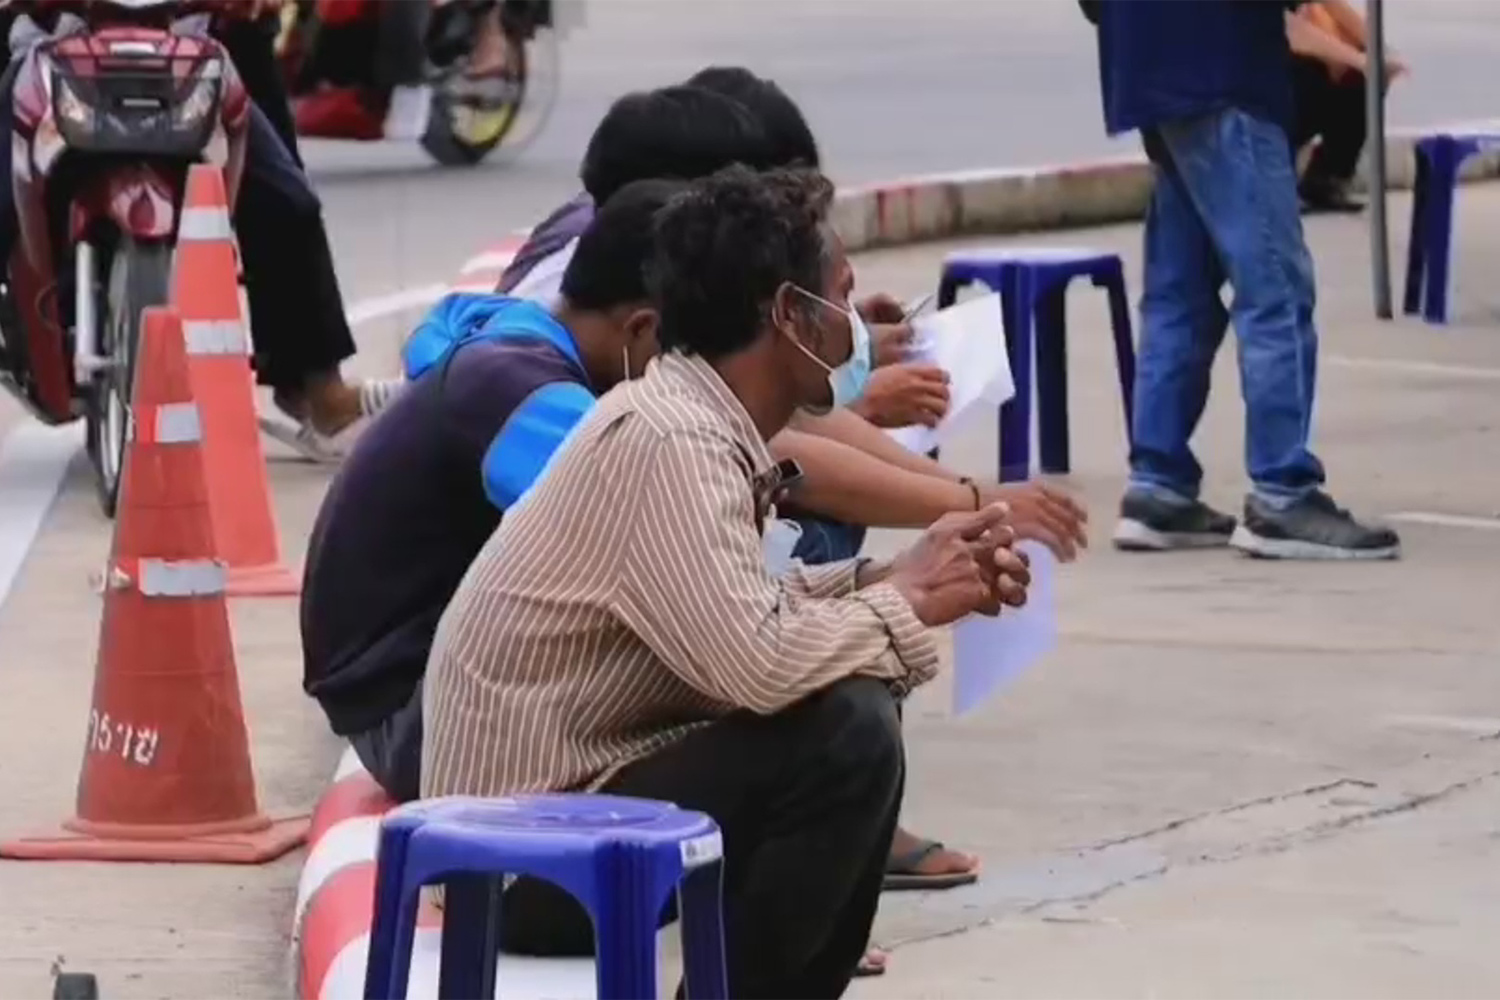 Workers wait their turn to be tested for Covid-19 in Muang district of Nakhon Ratchasima on Sunday. (Photo: Prasit Tangprasert)